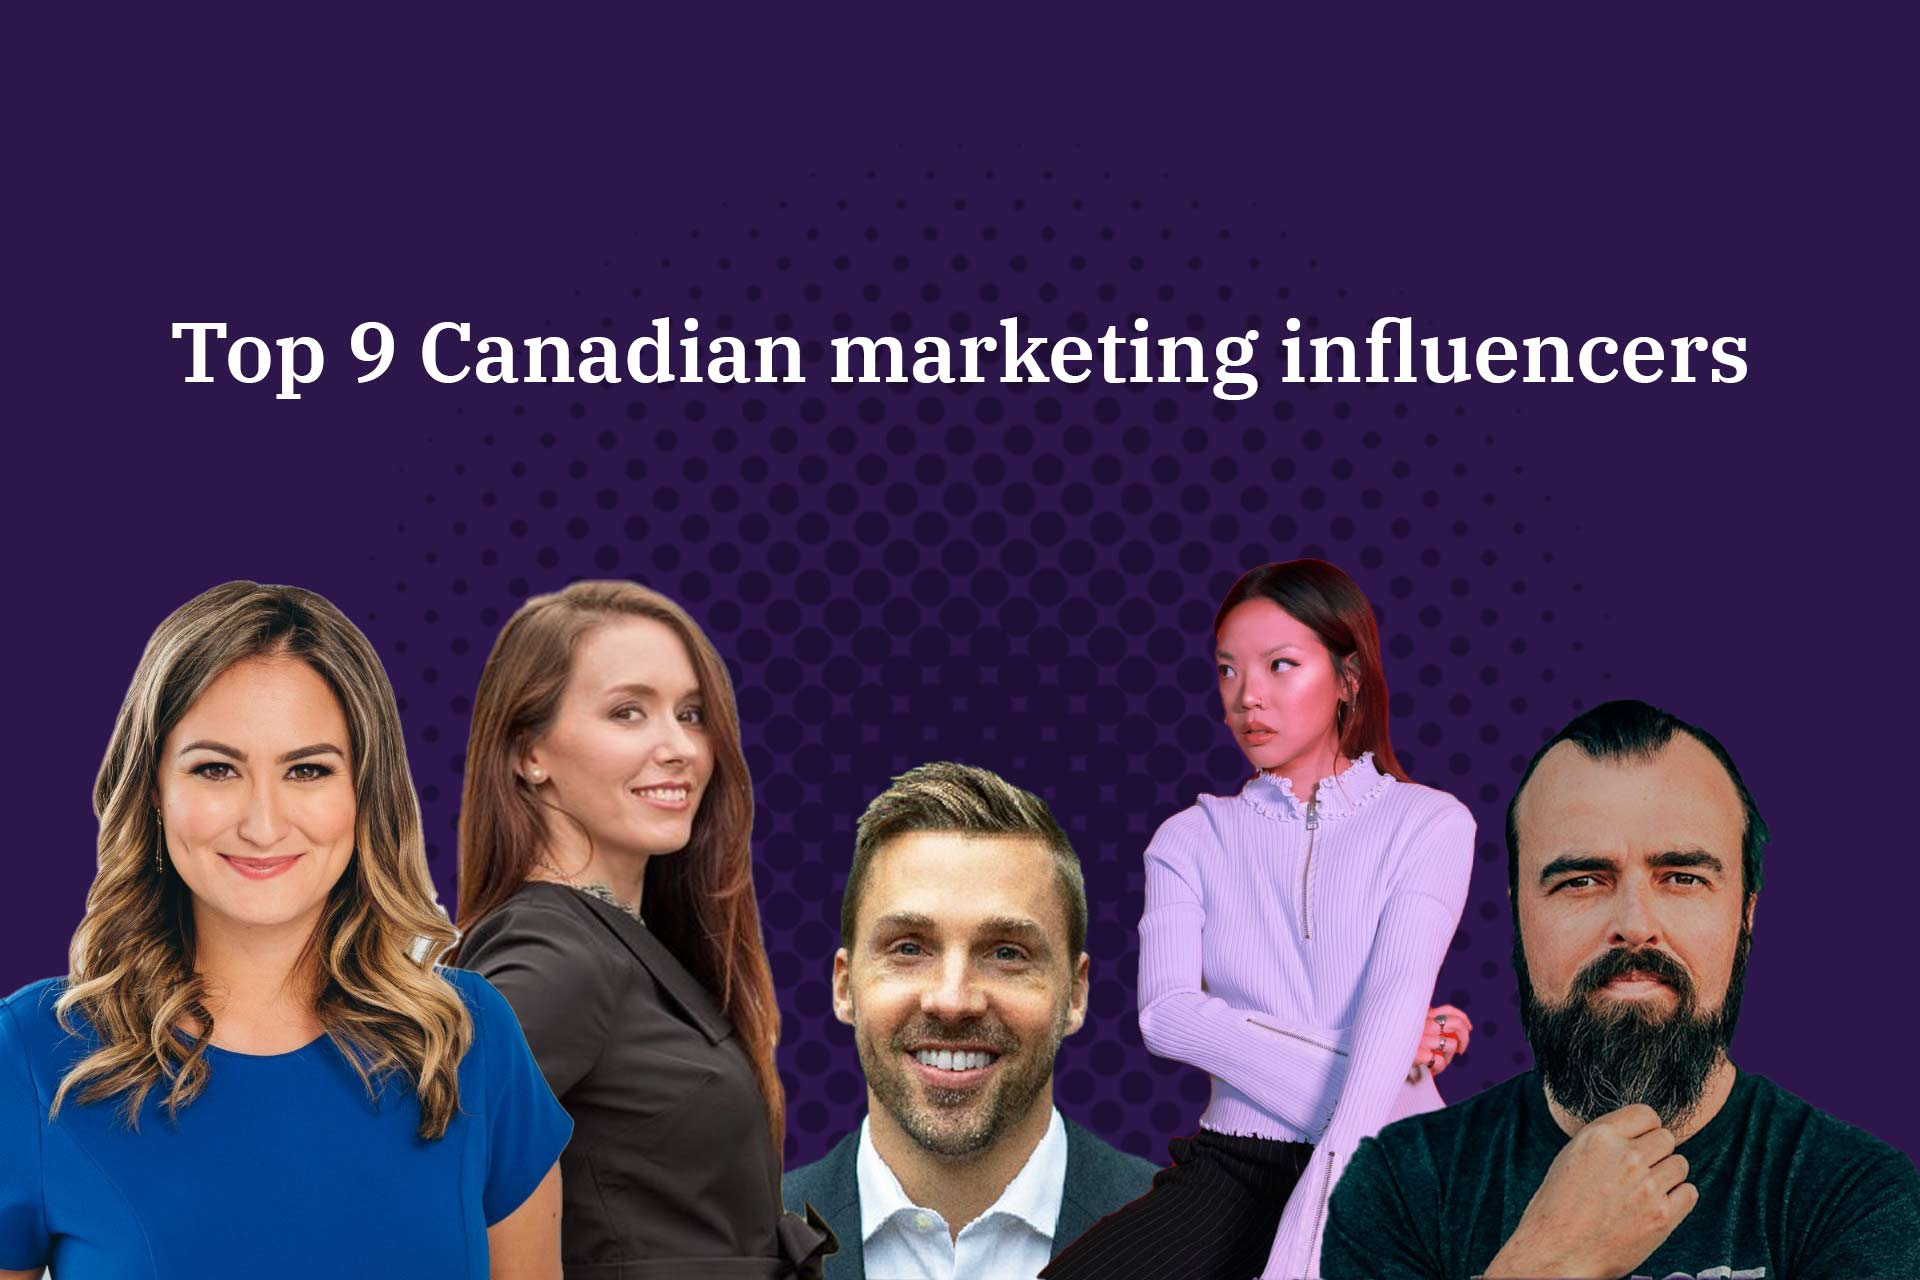 Top 9 Canadian marketing influencers